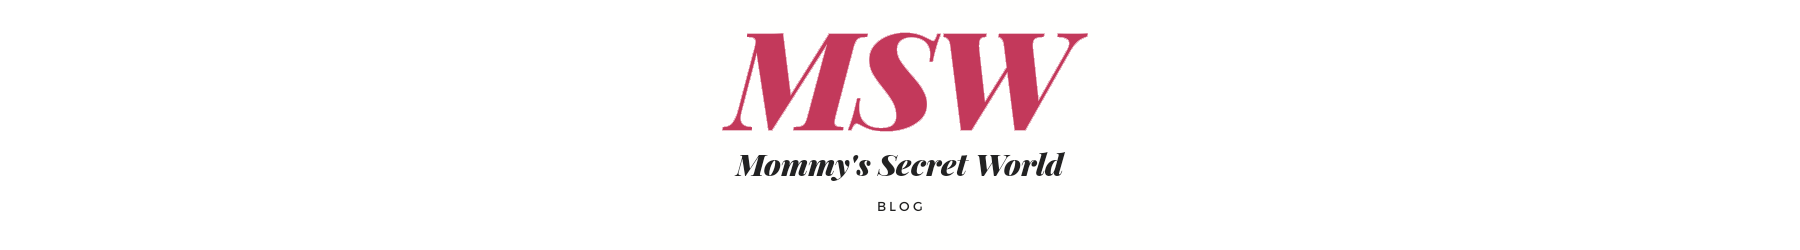 Mommy's Secret World